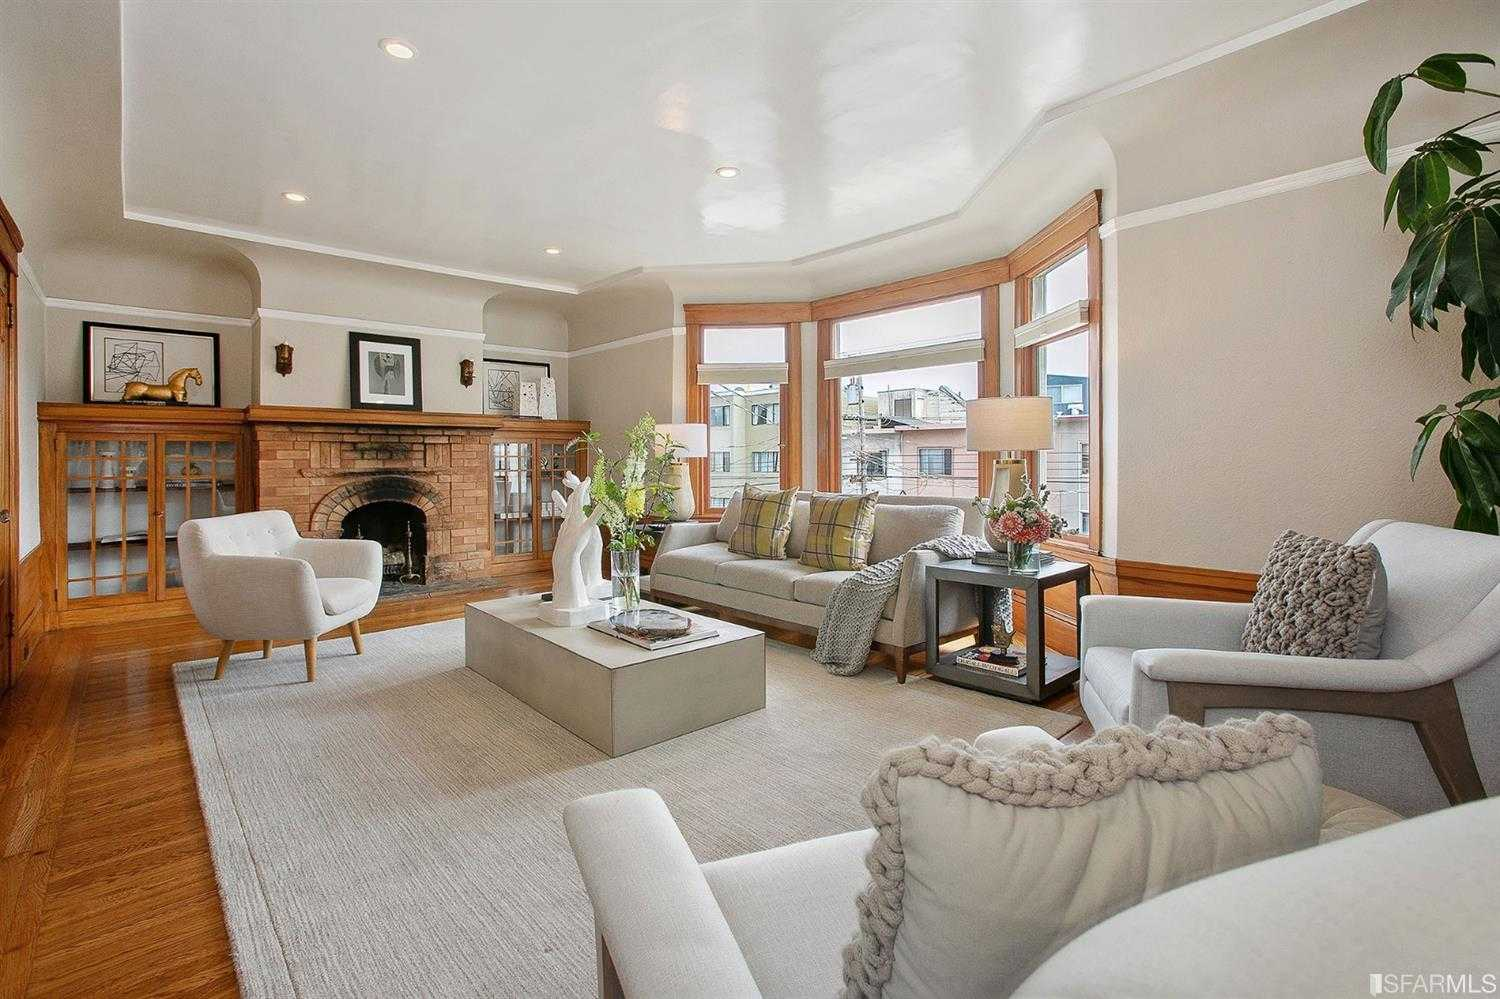 $1,060,000 - 2Br/1Ba -  for Sale in San Francisco